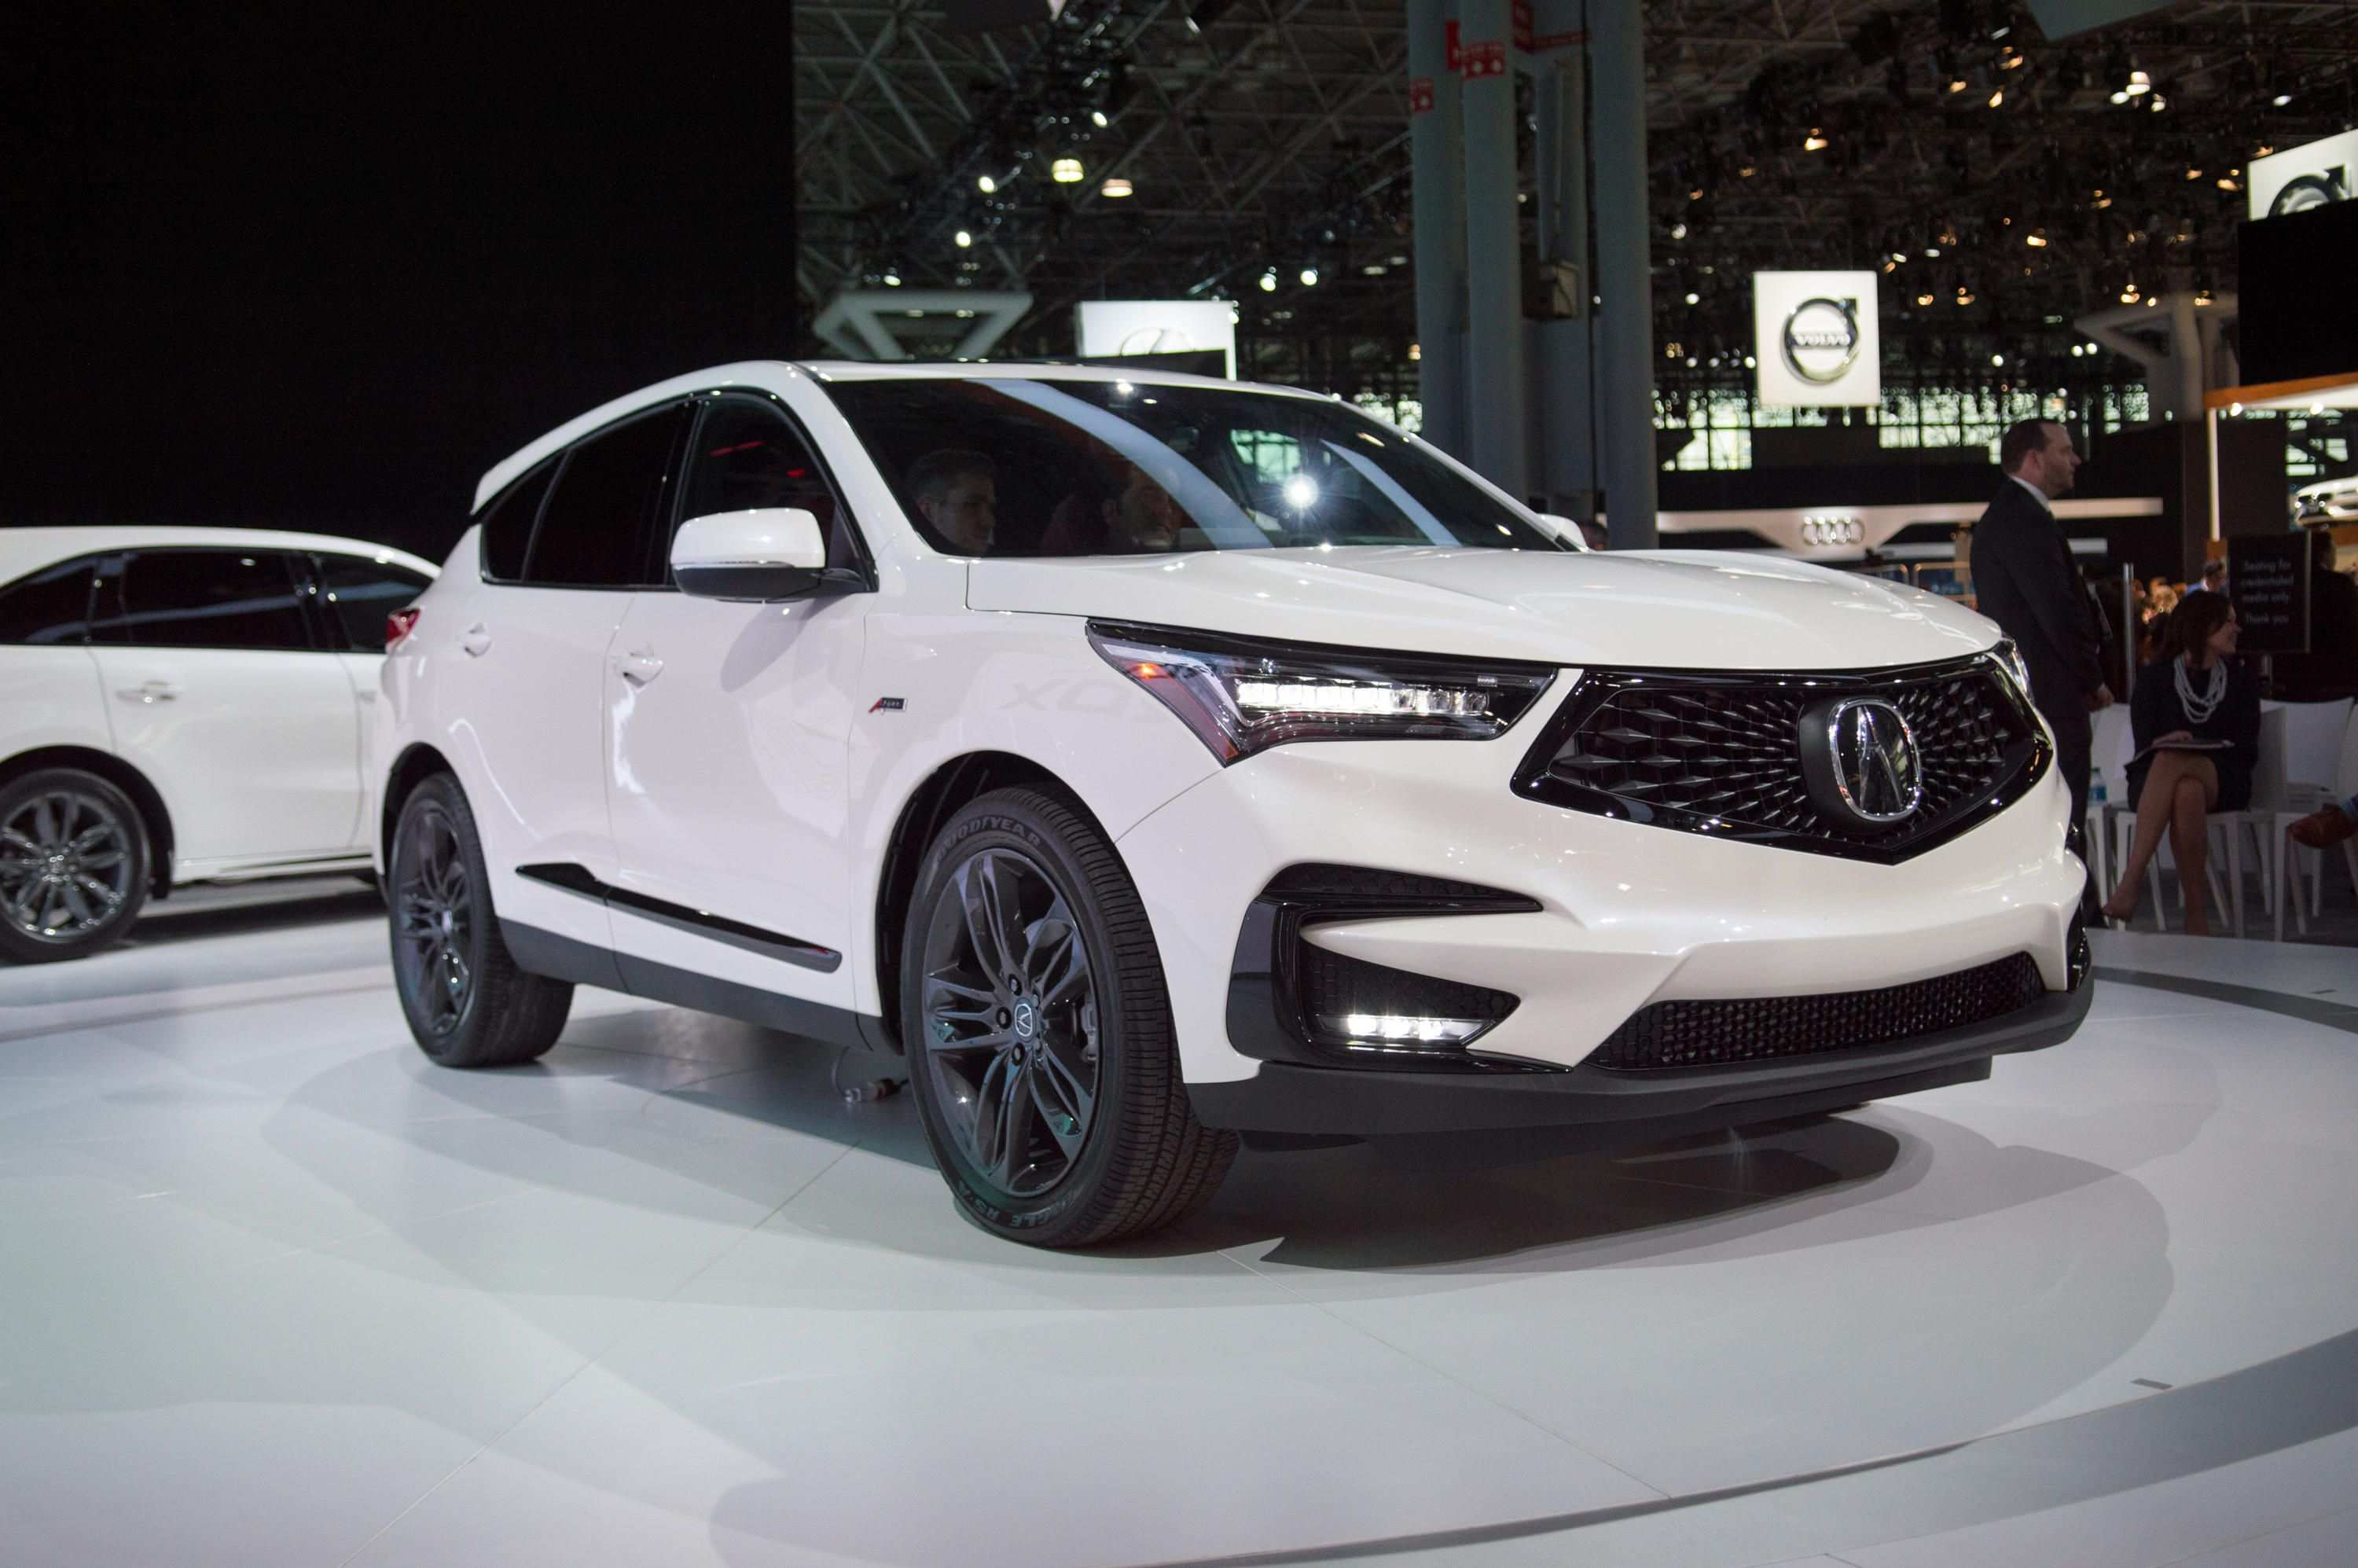 19 Great Acura 2019 Crossover First Drive Images with Acura 2019 Crossover First Drive